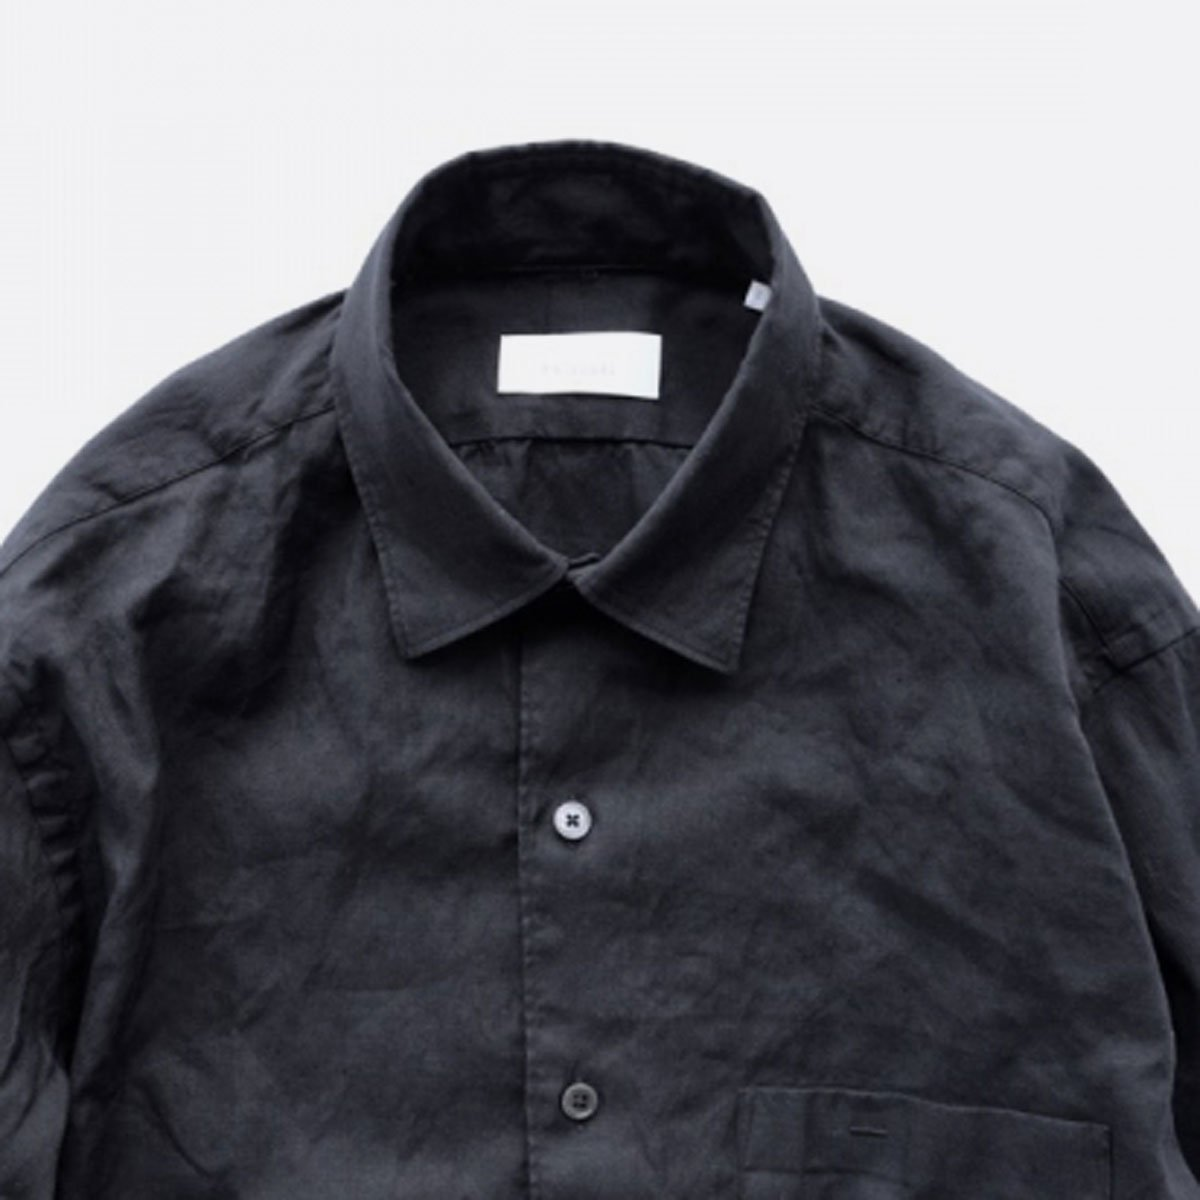 Phlannel American Sea Island Linen Anonymous Shirt  (Dark Navy)4